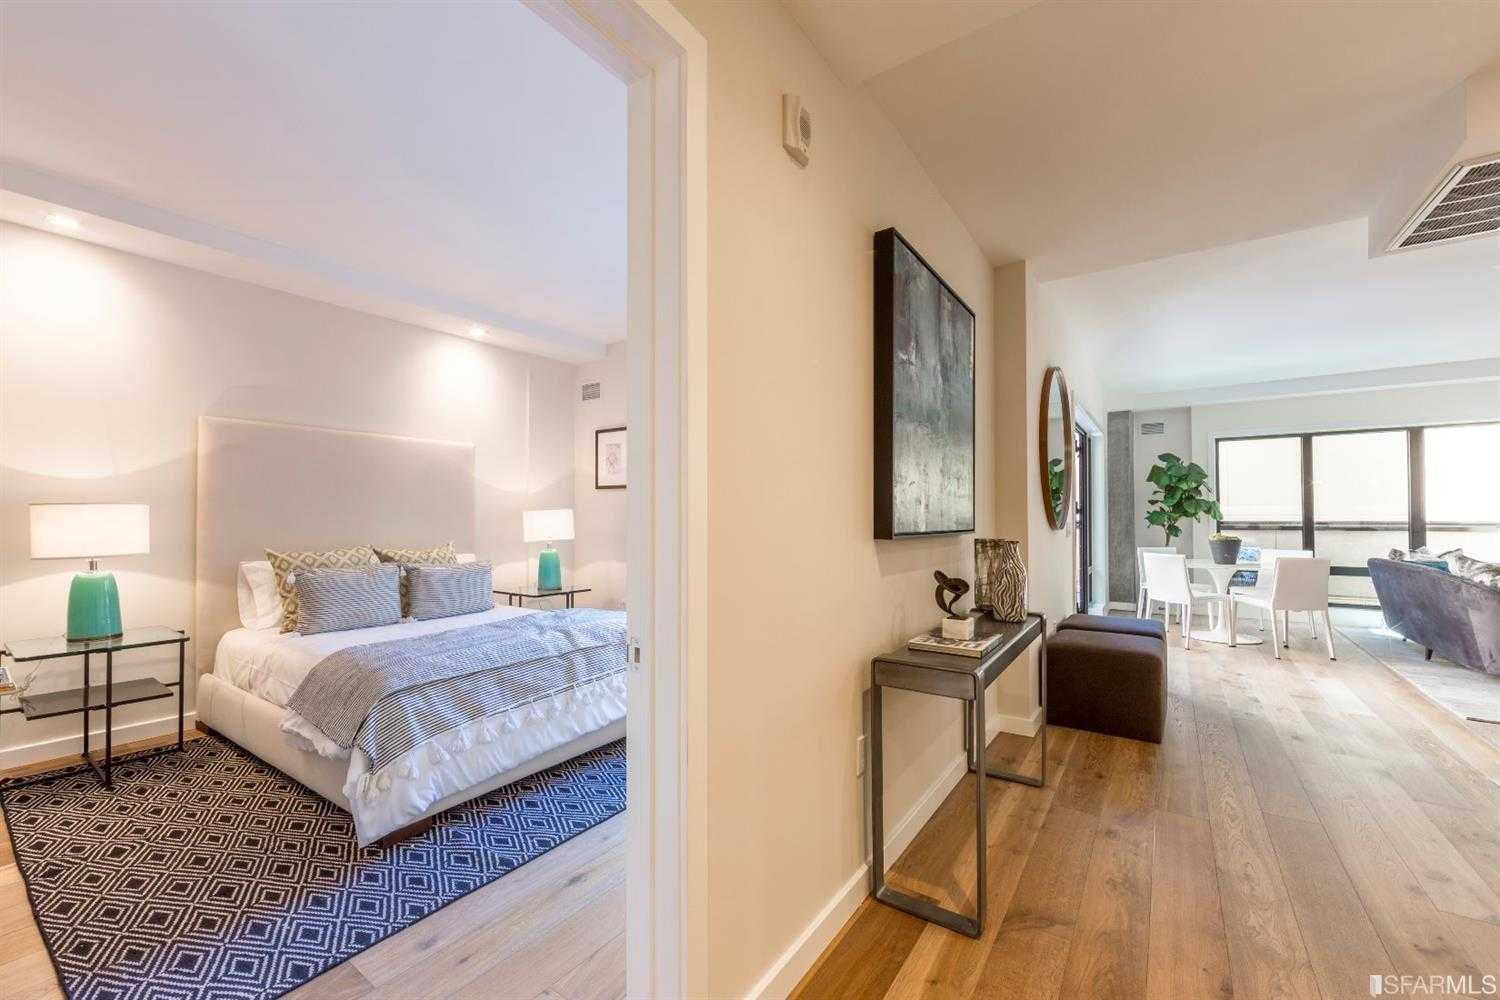 $1,900,000 - 2Br/2Ba -  for Sale in San Francisco